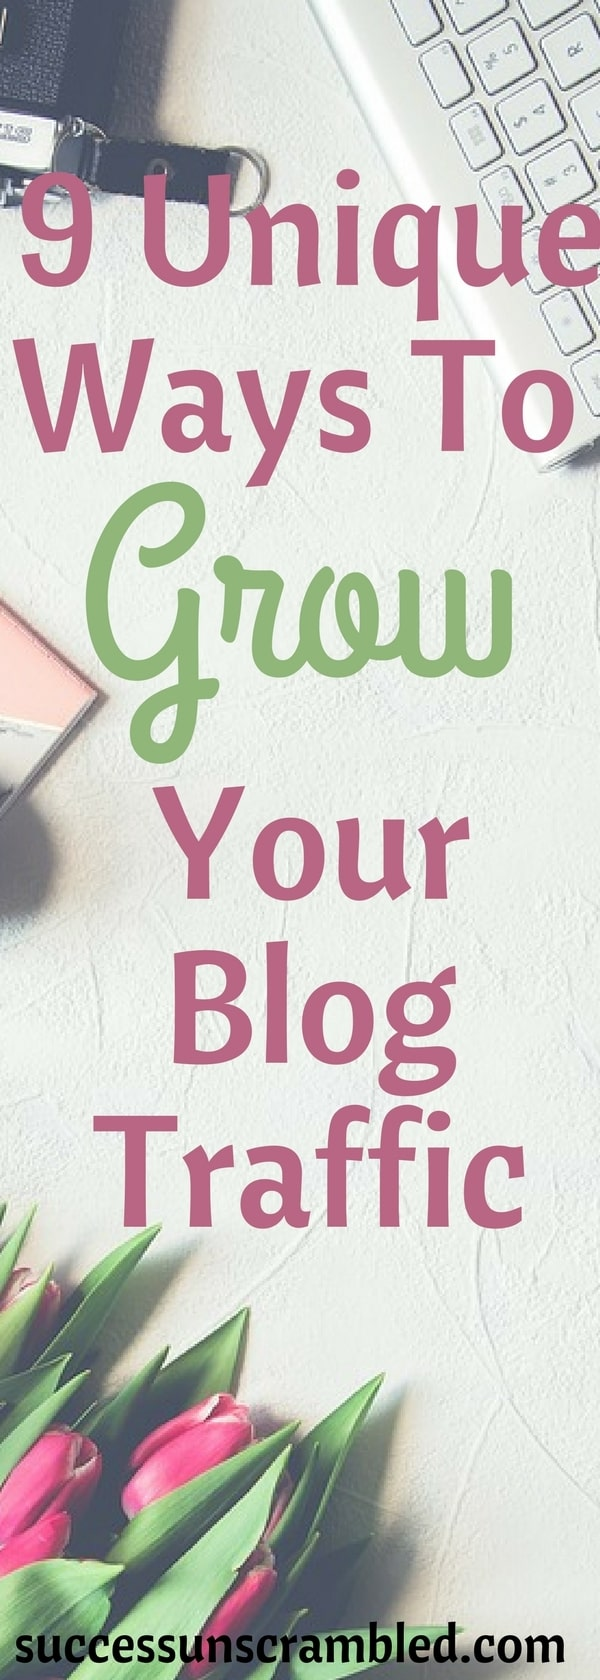 9 Unique Ways To Grow Your Blog Traffic